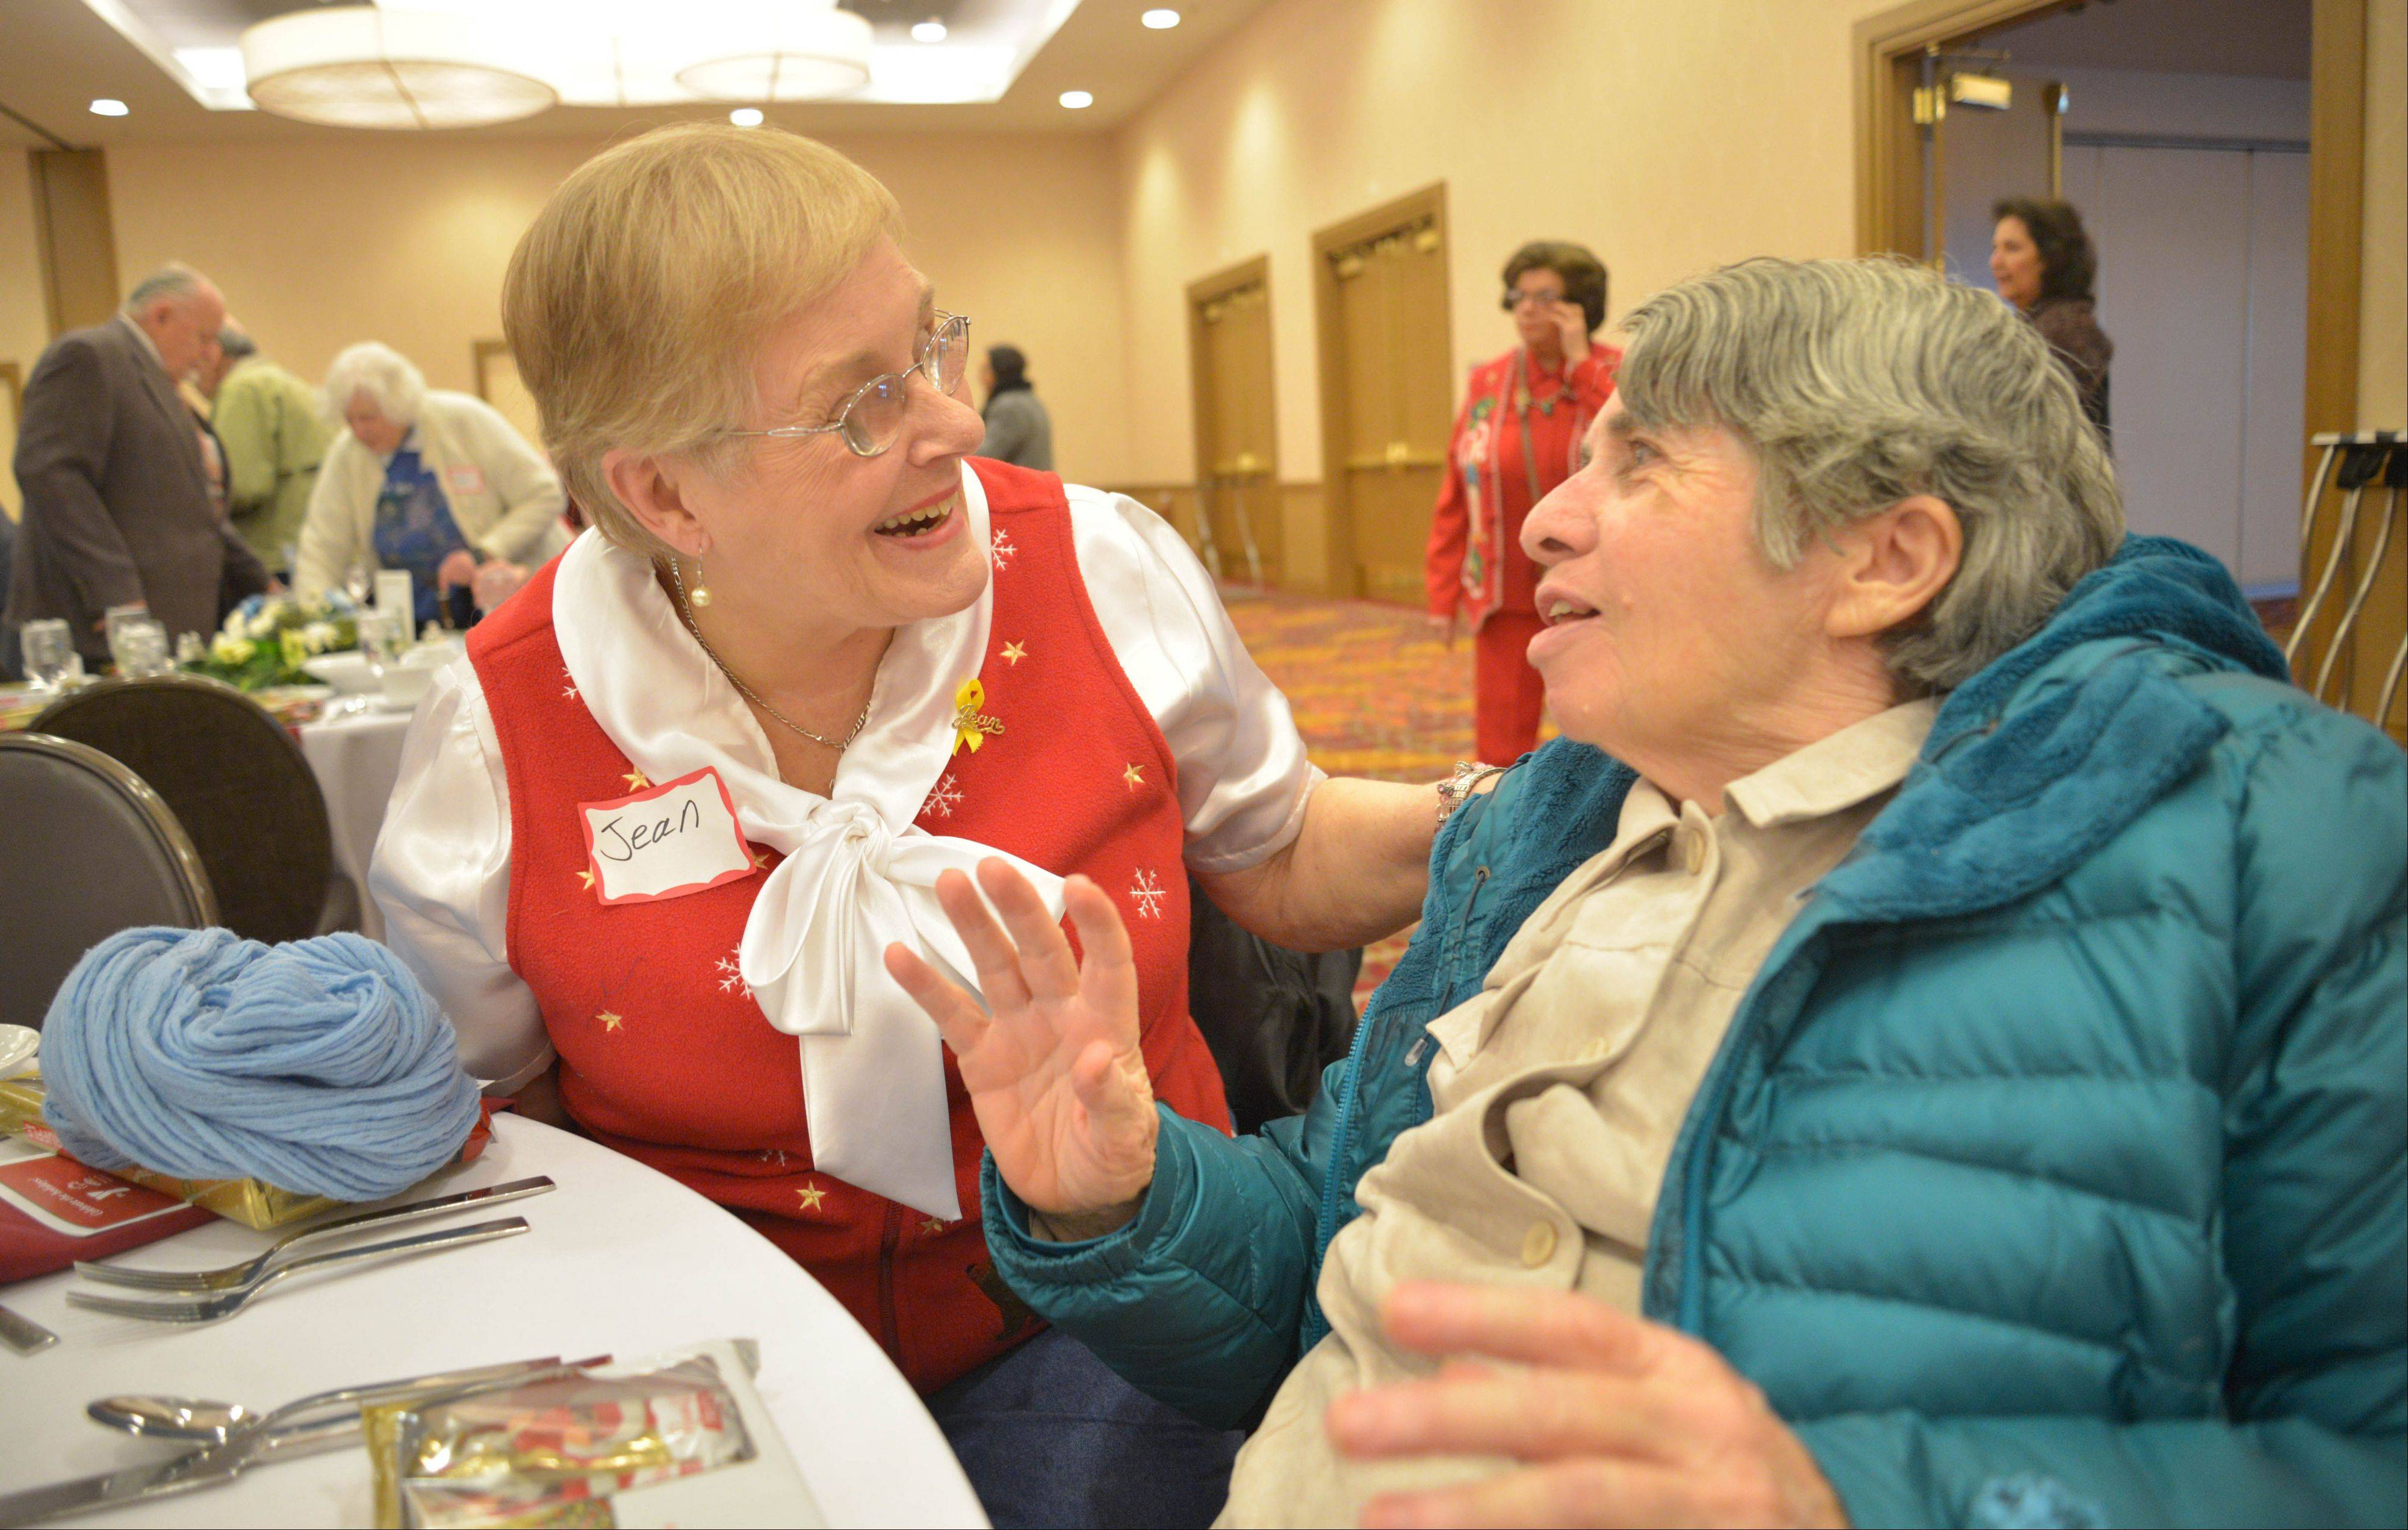 Jean Lundquist of Aurora, left, and Alice Glavin, of Naperville, chat during the 30th annual Christmas Seniors Luncheon hosted by the Naperville Park District and Naperville YMCA. The luncheon was free to seniors.